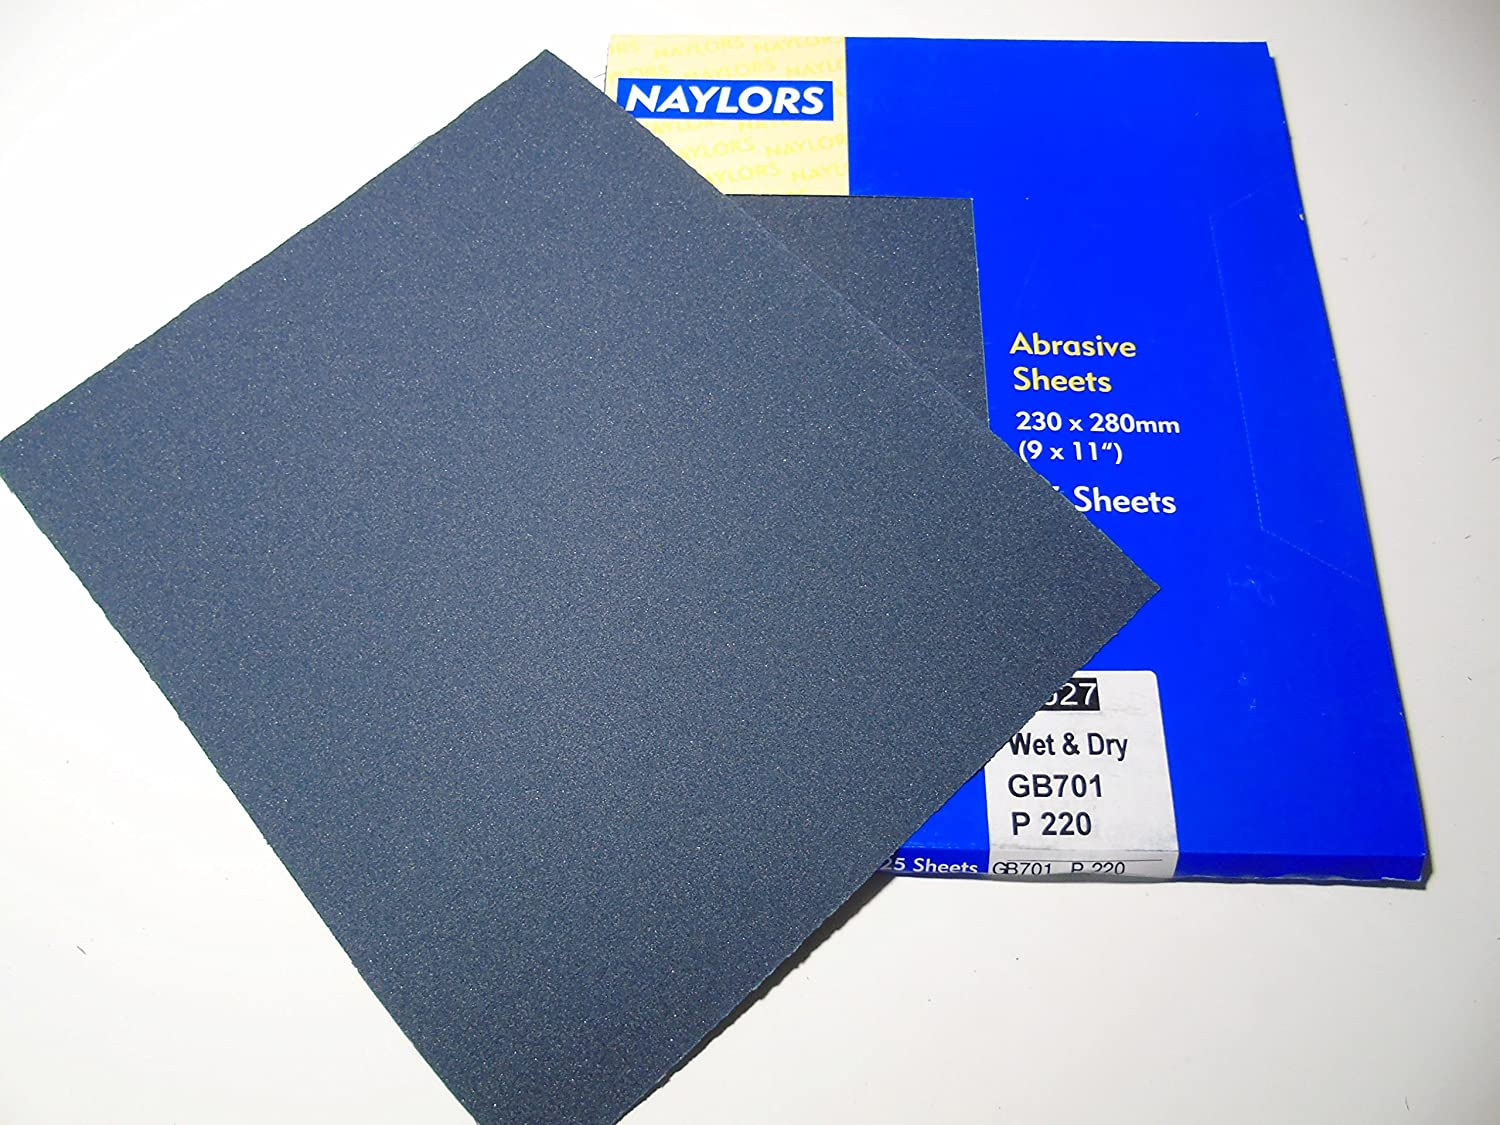 10 x Grit 220 Wet and dry Sandpaper Sheets waterproof Abrasive Coarse Medium / Fine Quality Silicon Carbide Naylors